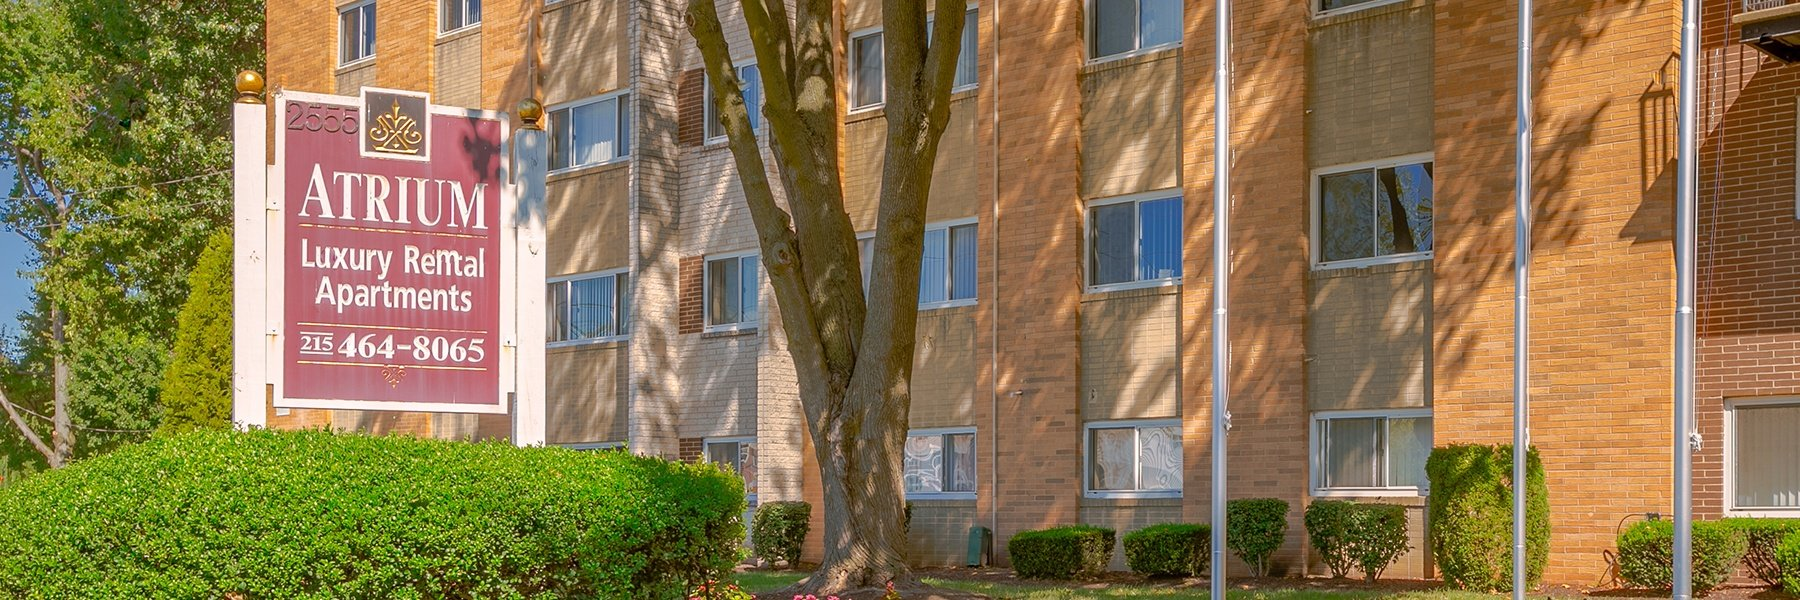 Atrium Apartments For Rent in Philadelphia, PA Welcome